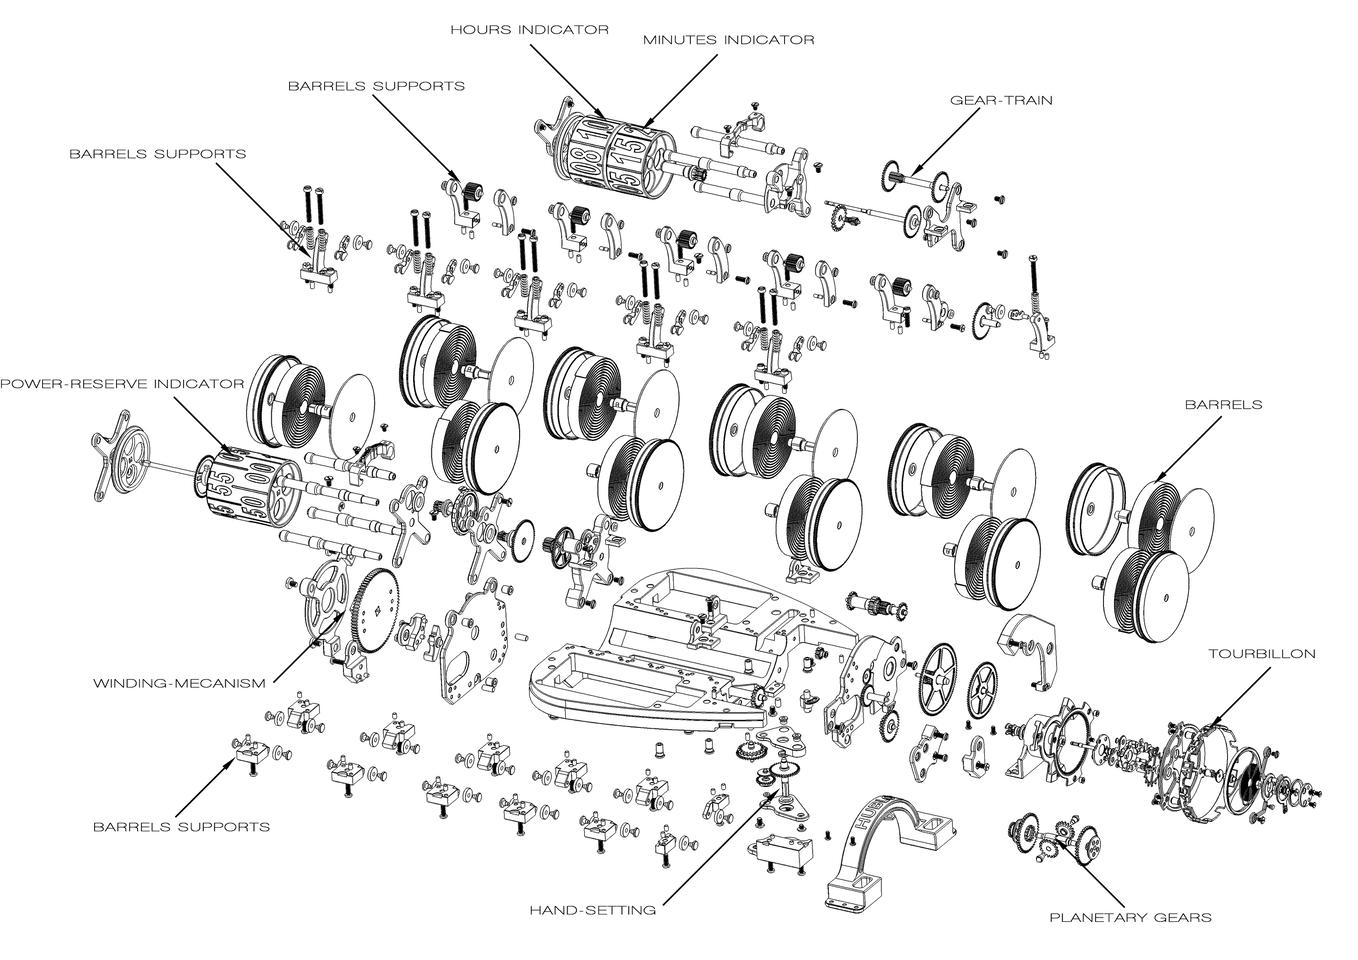 A diagrammatic breakdown of the components that together form the MP-05 LaFerrari watch